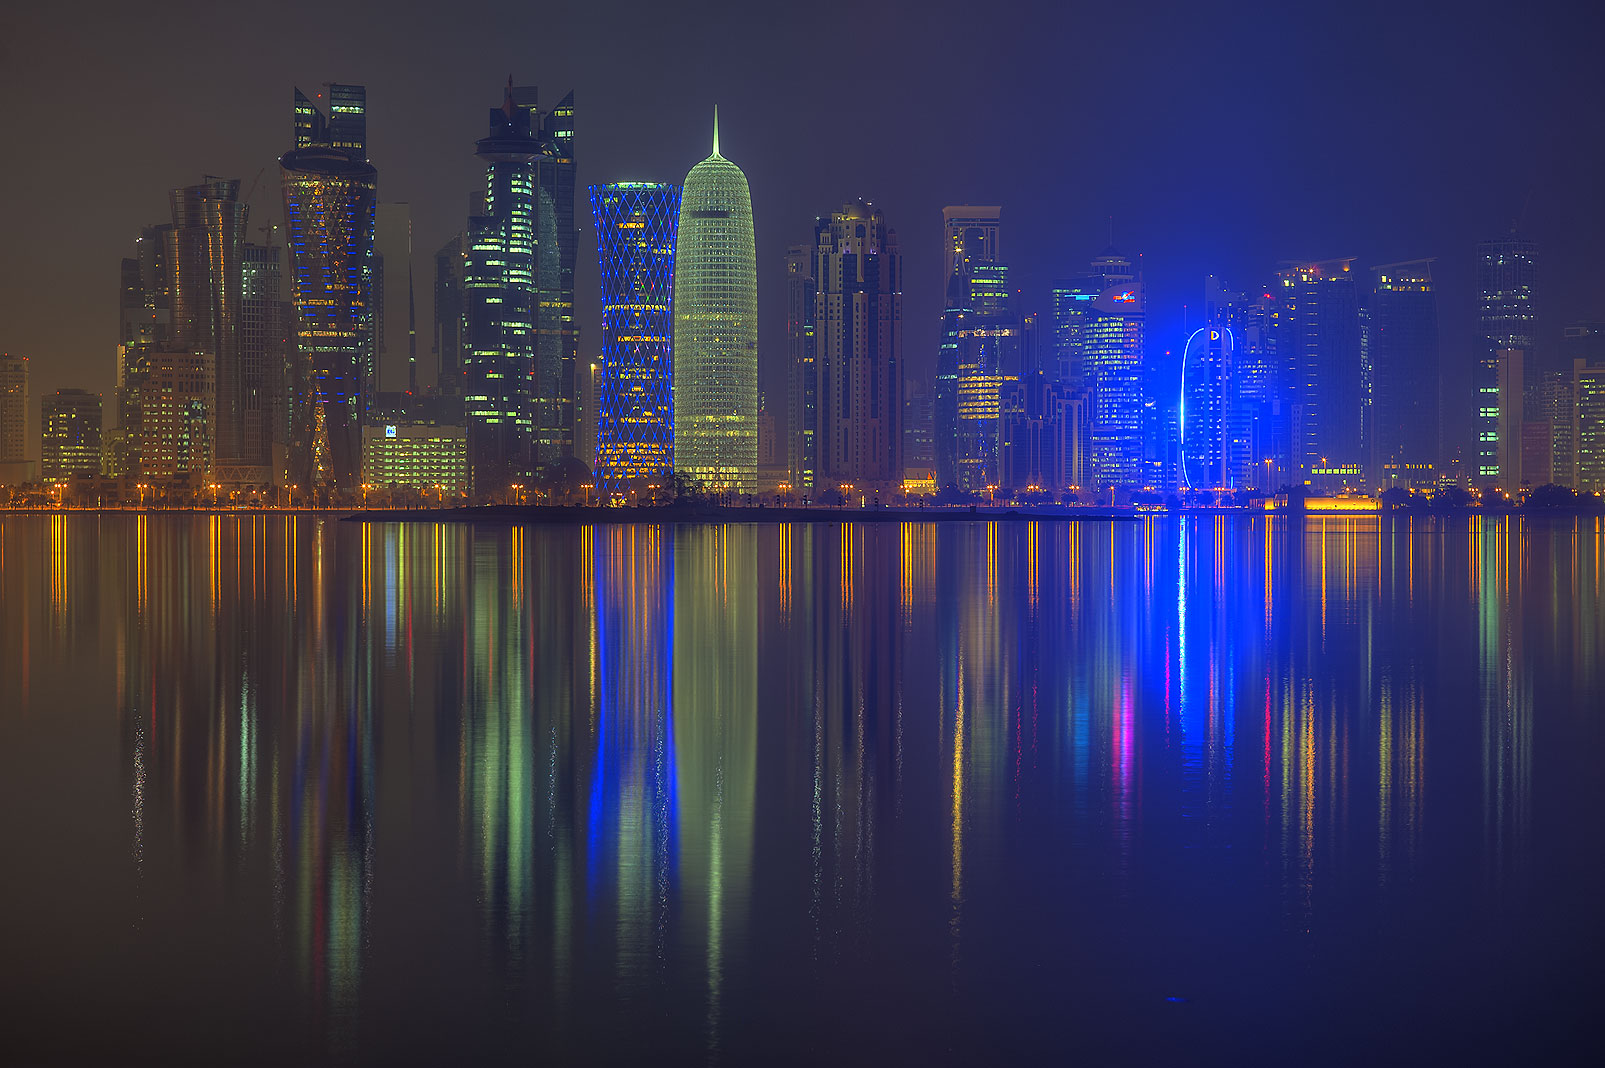 Lights of West Bay towers from Corniche promenade. Doha, Qatar